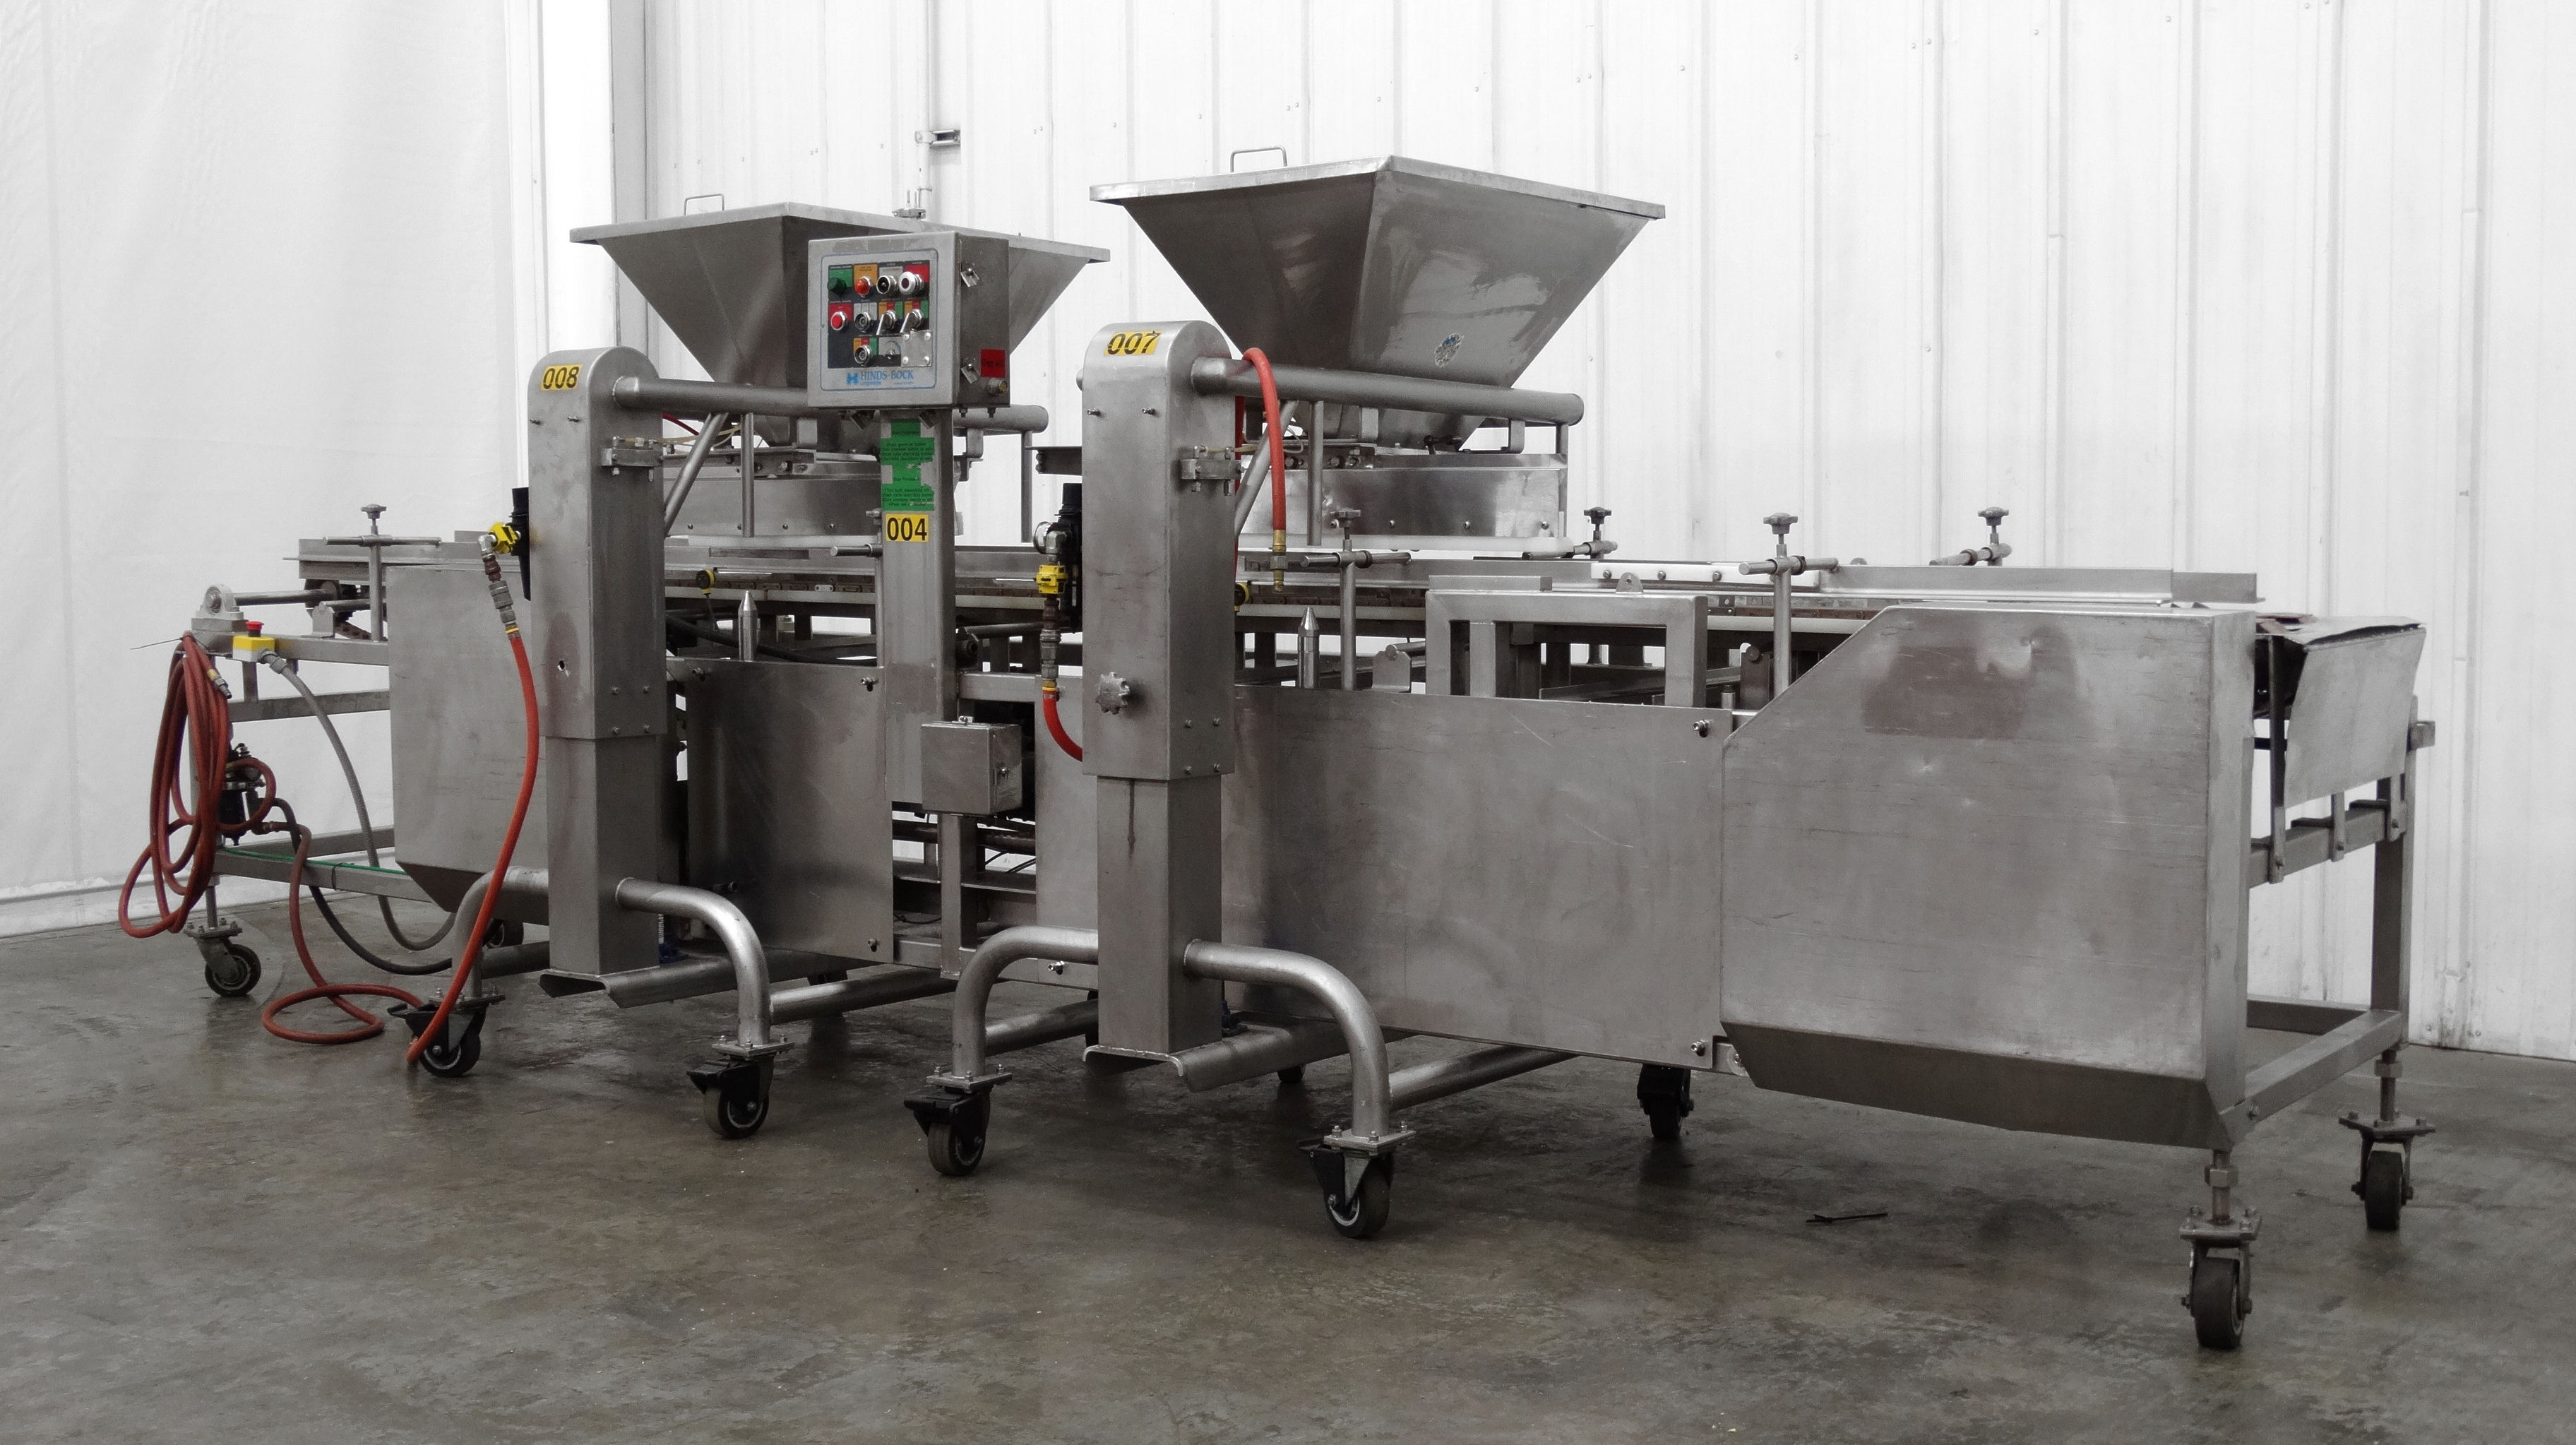 Hinds-Bock Dual Depositor 4P-04 Cheesecake Line B5001